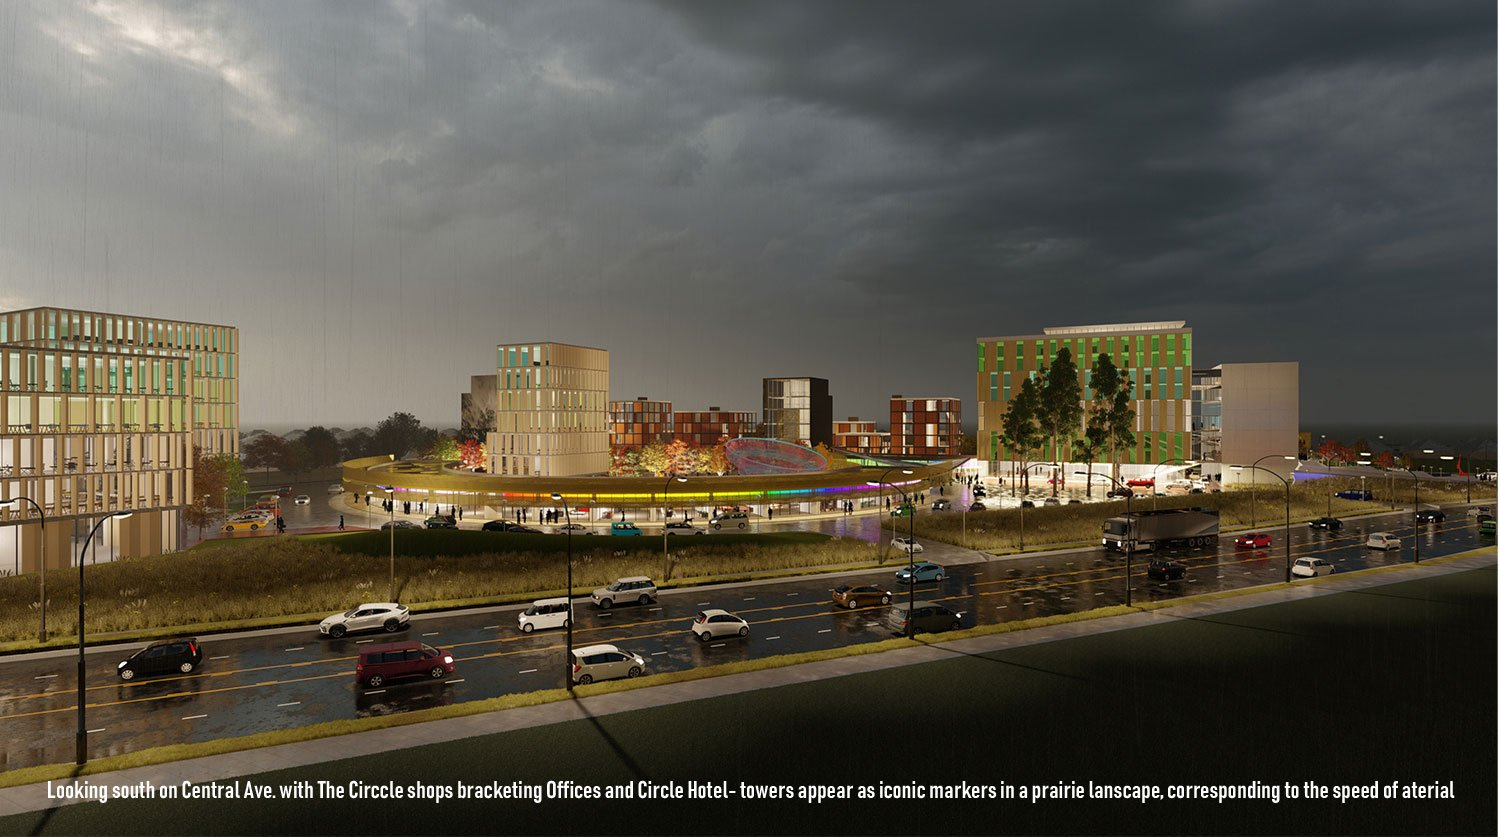 Central Ave commuters see storefront amid a prairie with iconic towers. University of Arkansas Community Design Center}